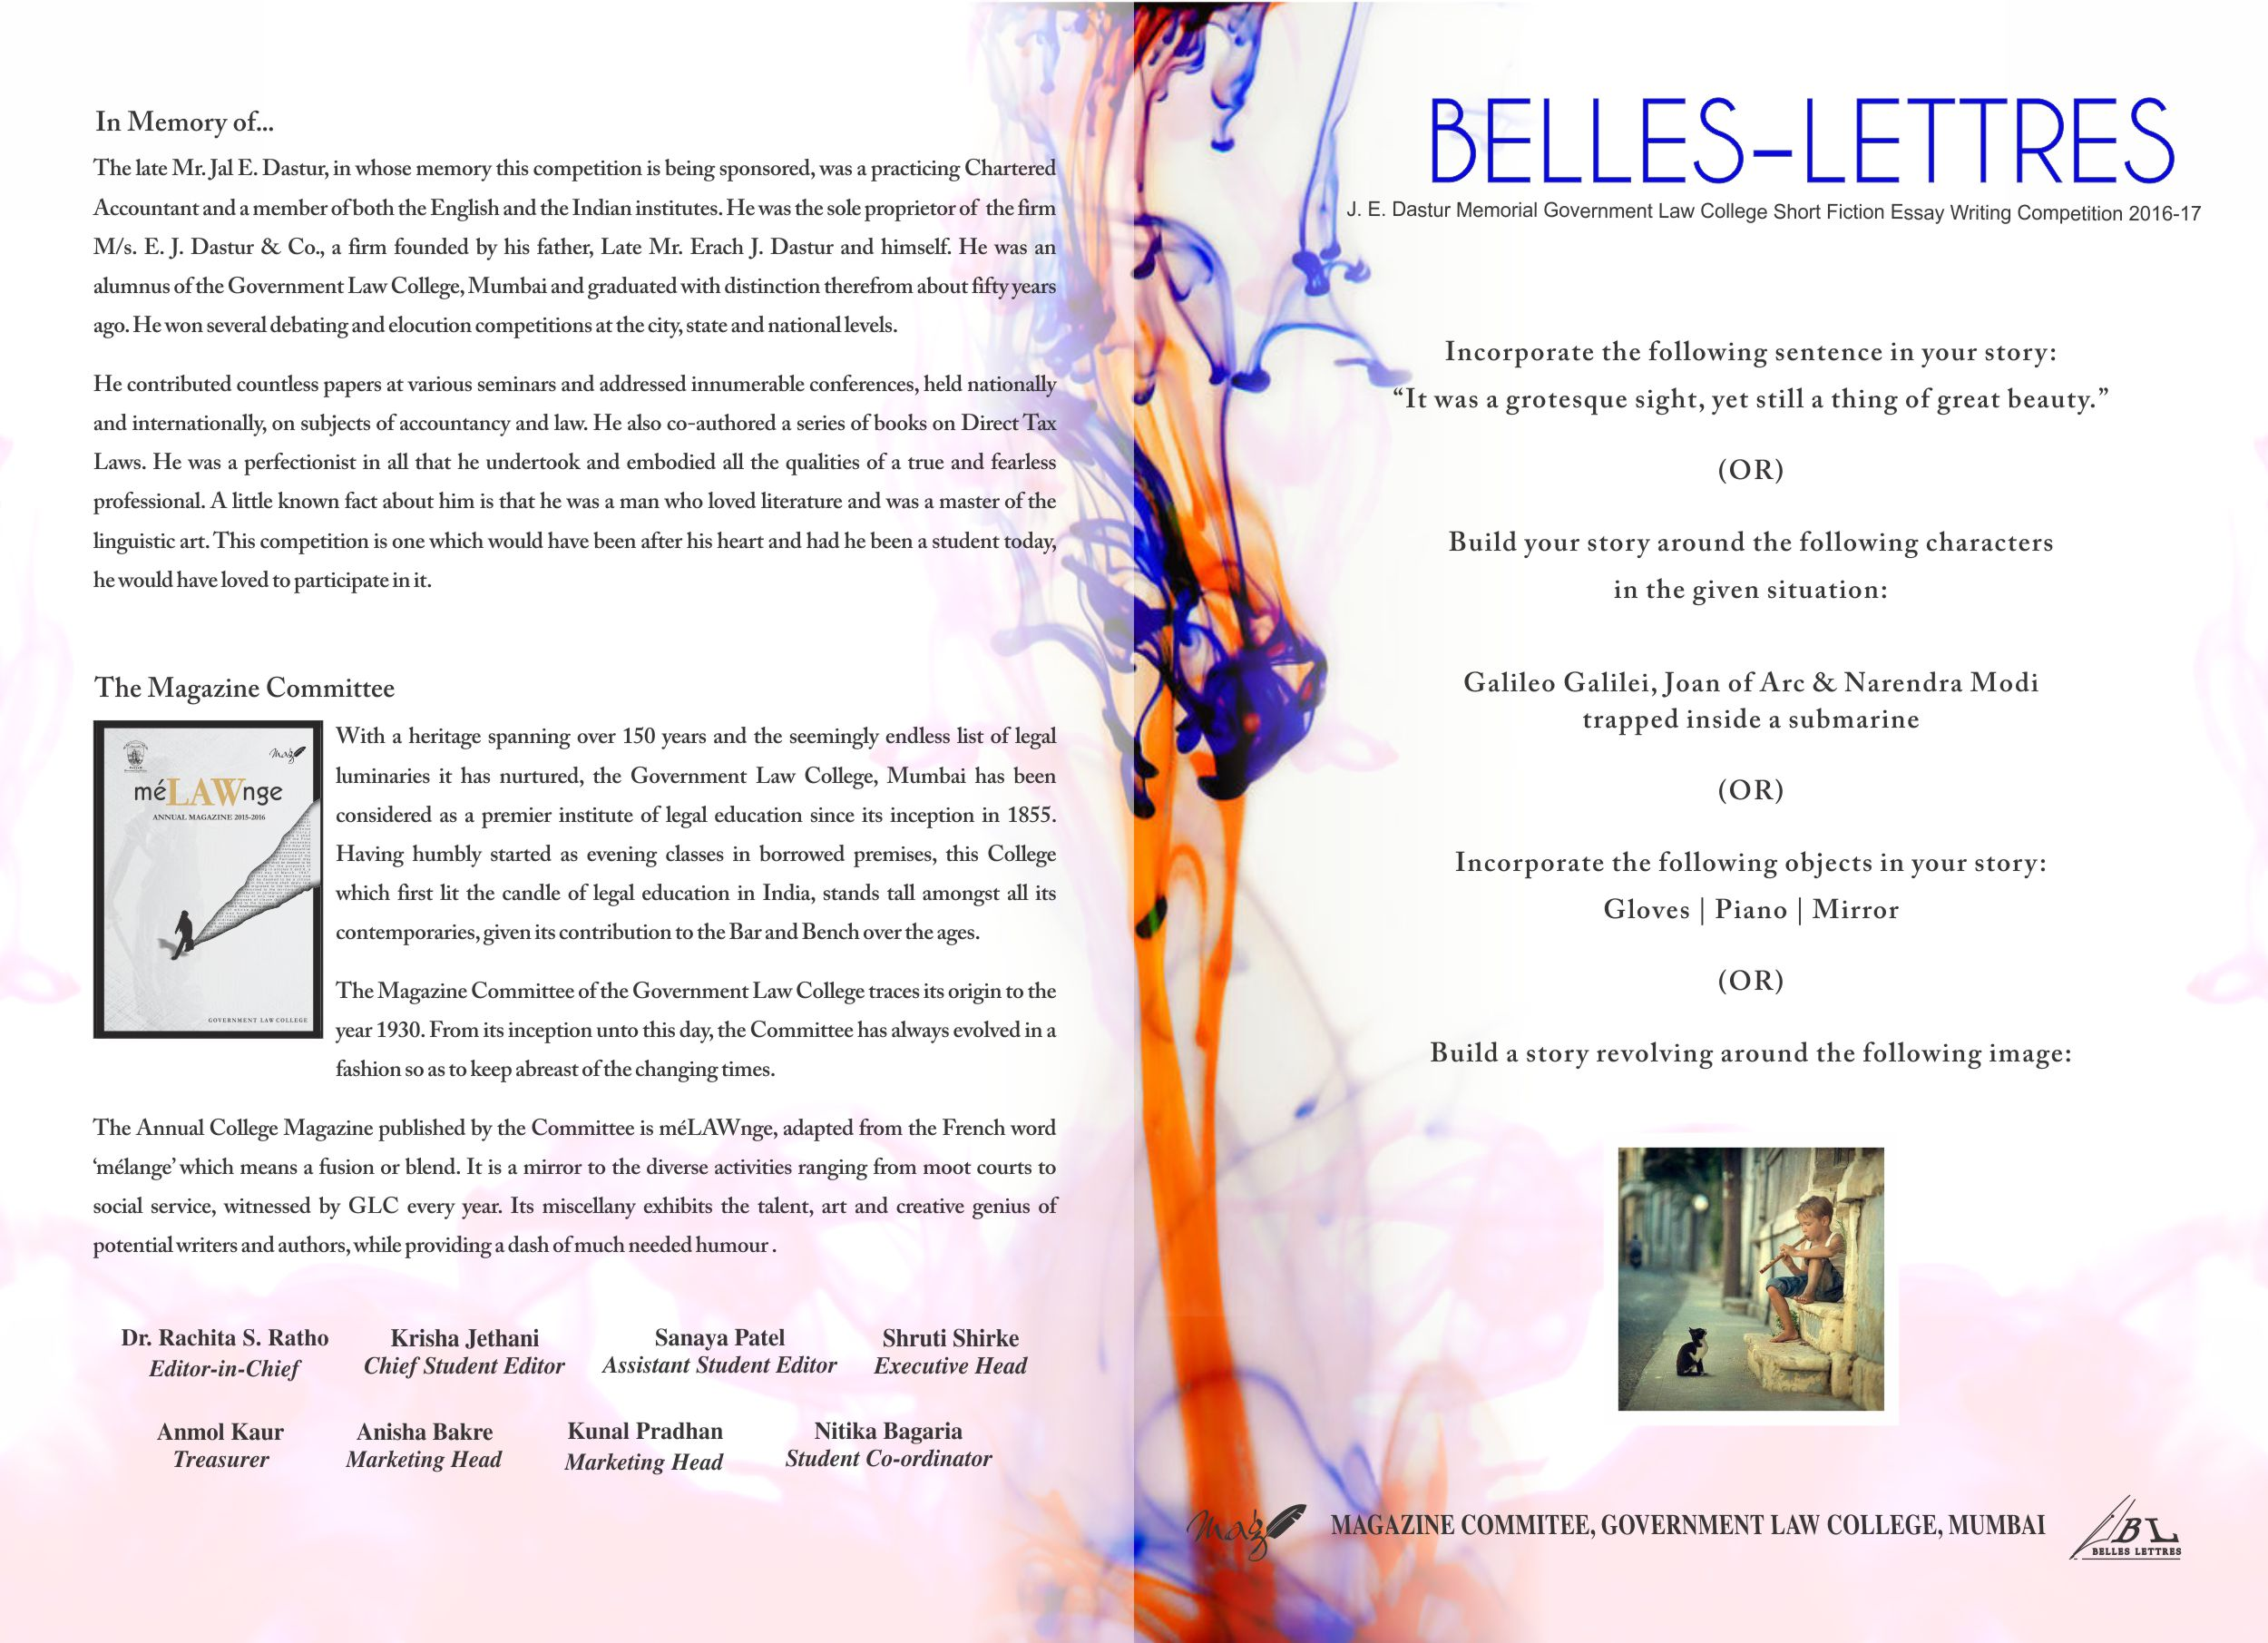 Belles Lettres - J .E. Dastur Memorial Government Law College Fiction Essay Writing Competition